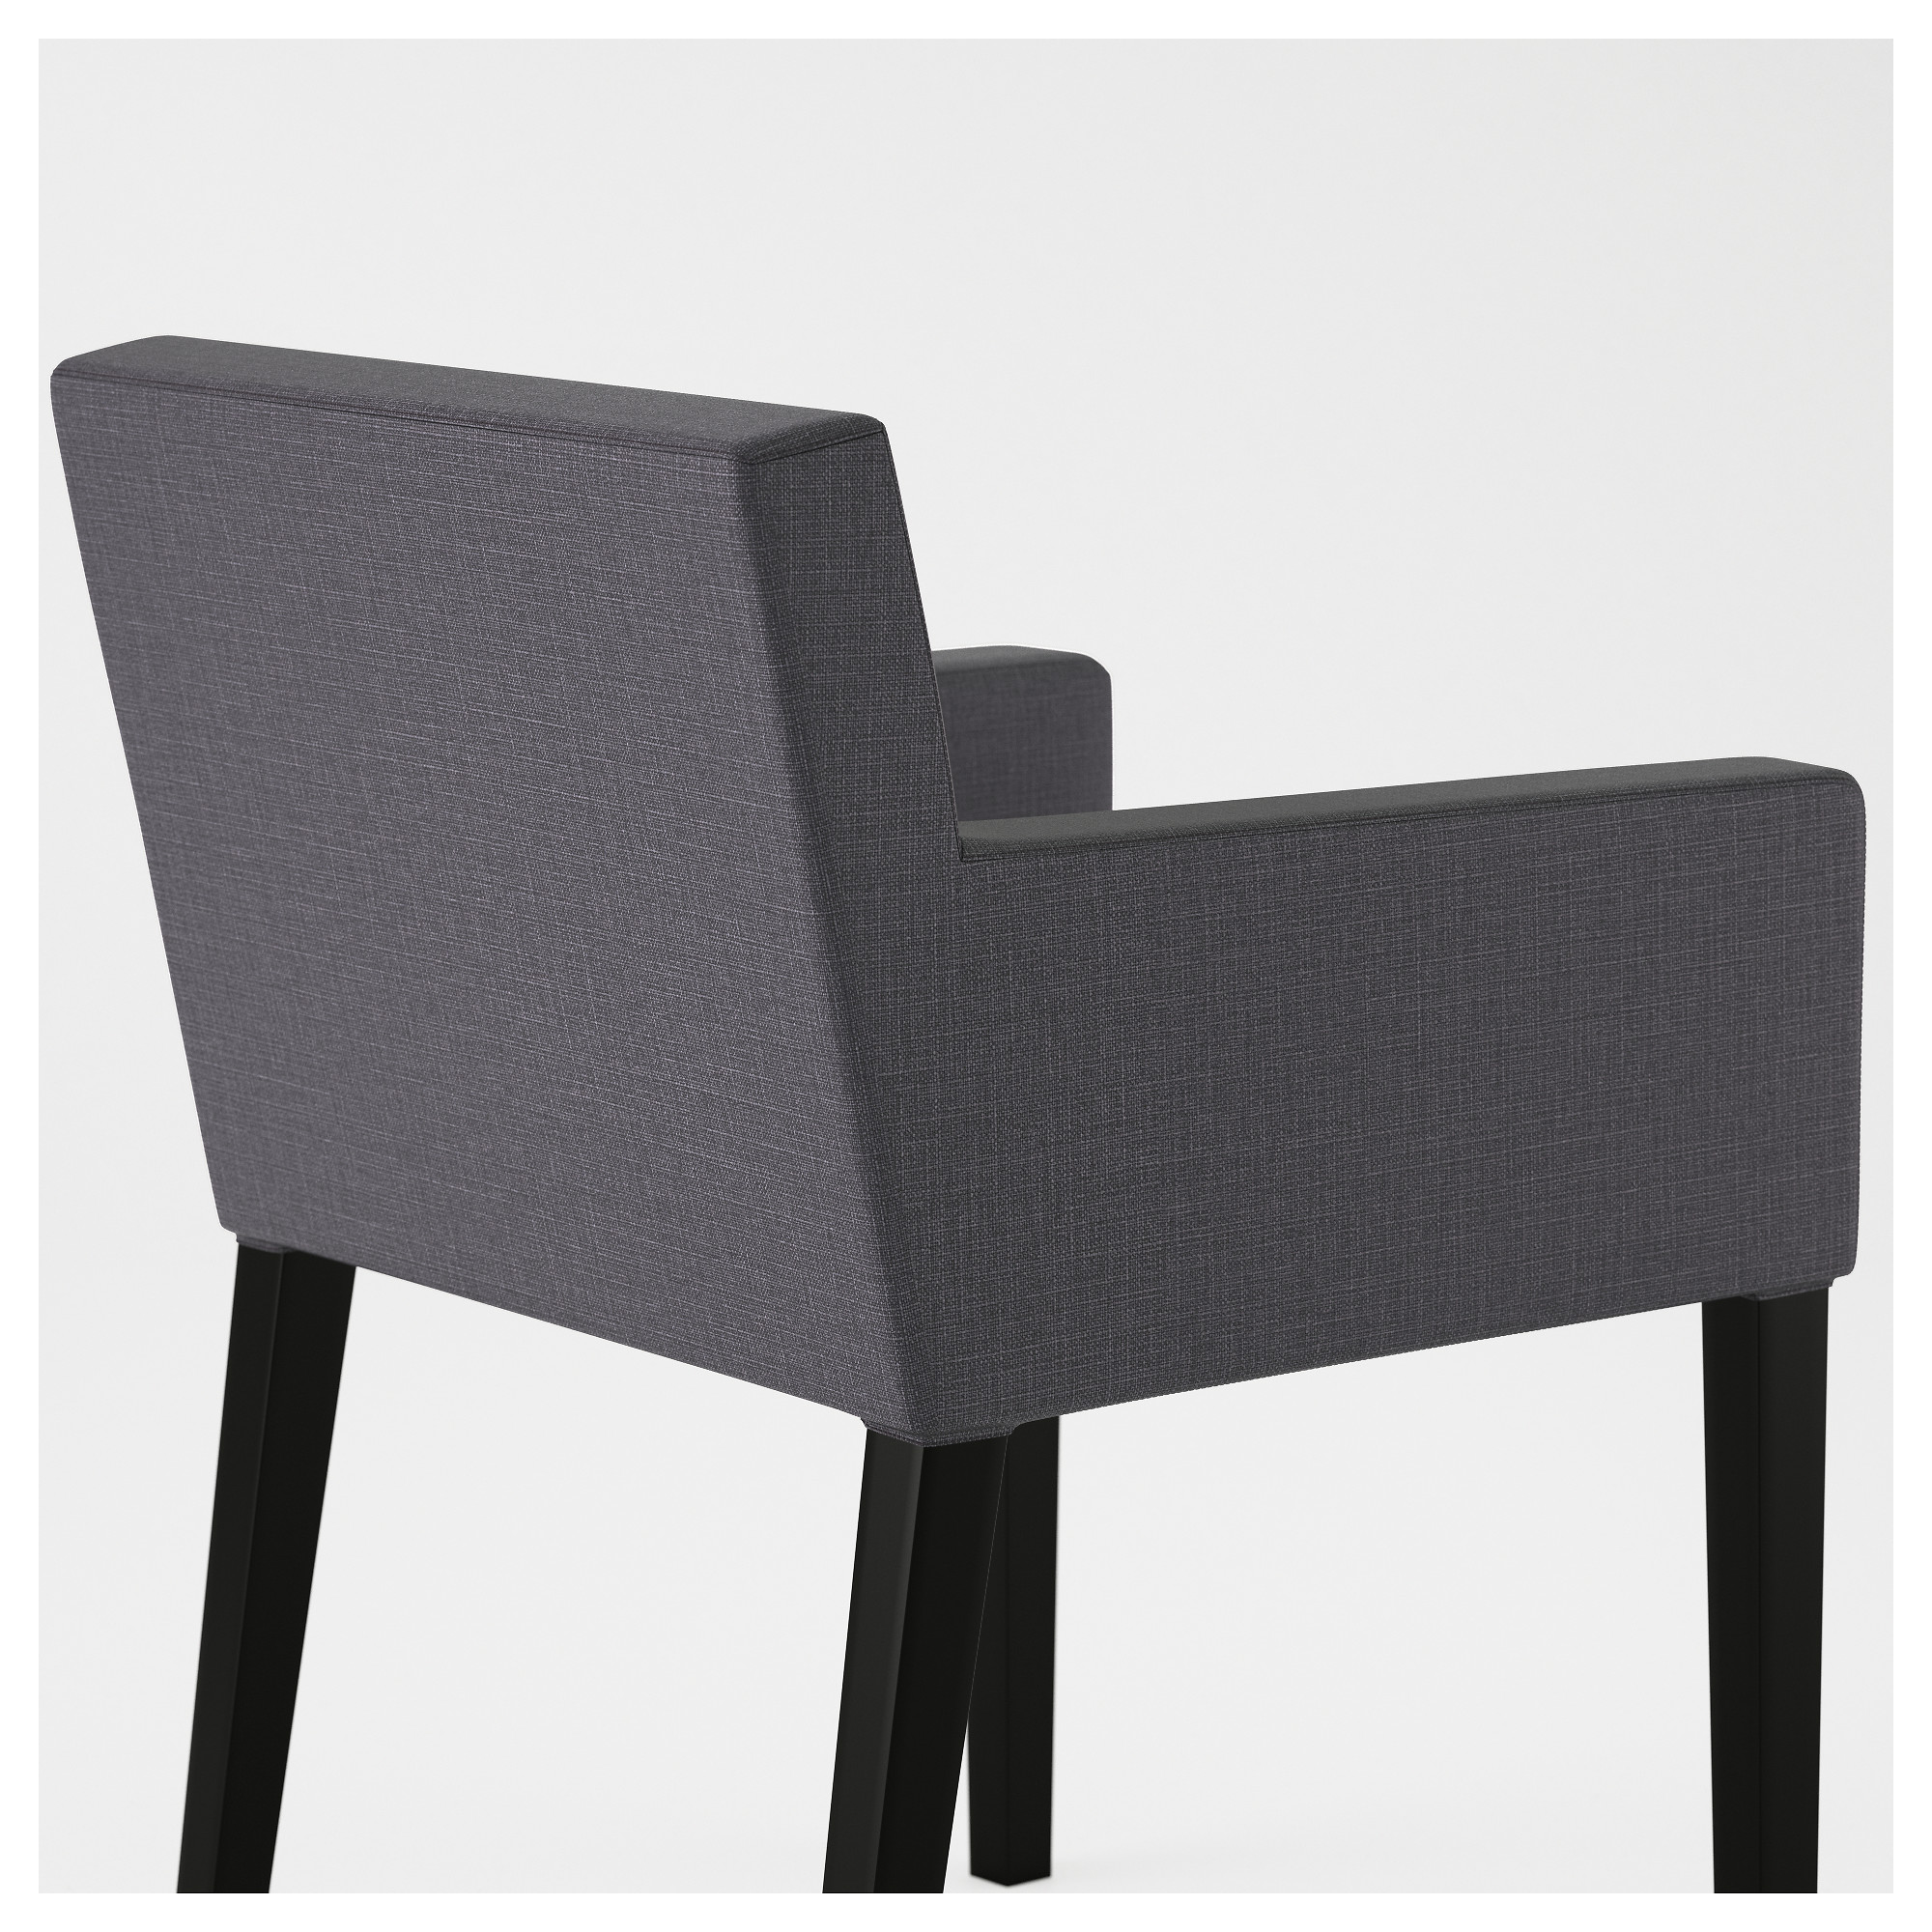 Charming NILS Chair With Armrests   IKEA